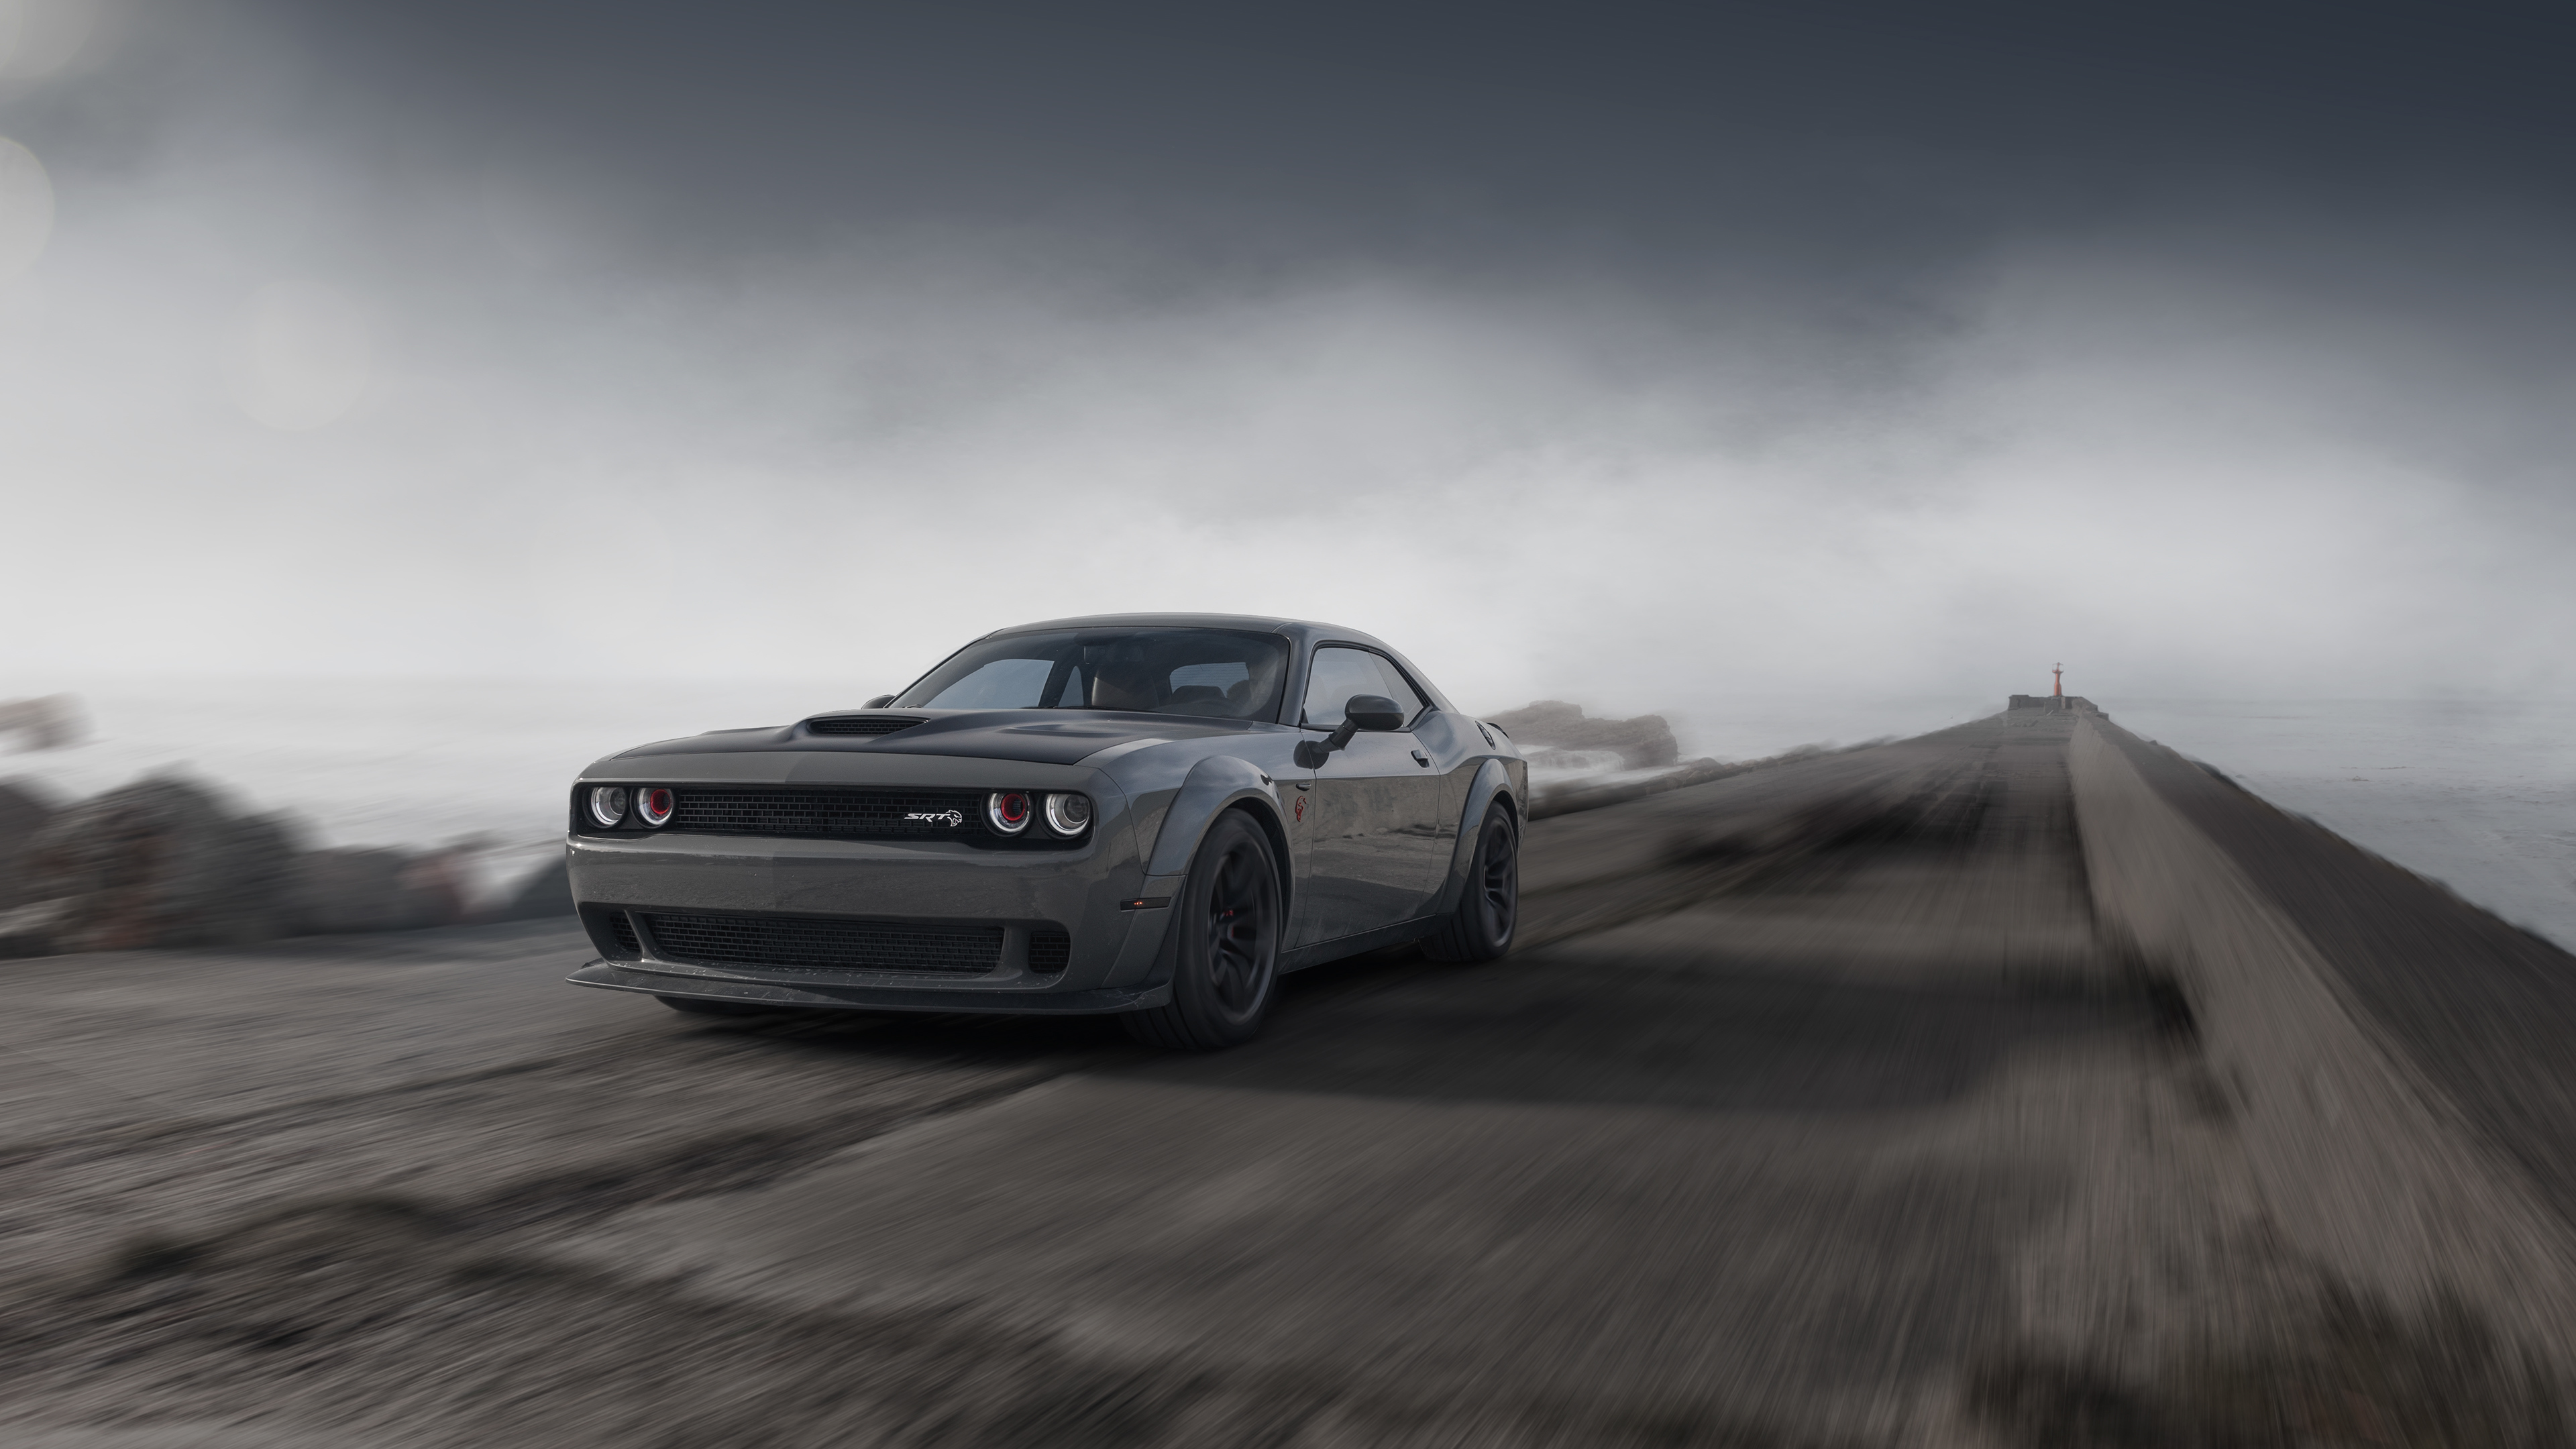 dodge challenger demon srt front 1572661086 - Dodge Challenger Demon SRT Front - hd-wallpapers, dodge challenger wallpapers, cars wallpapers, behance wallpapers, 4k-wallpapers